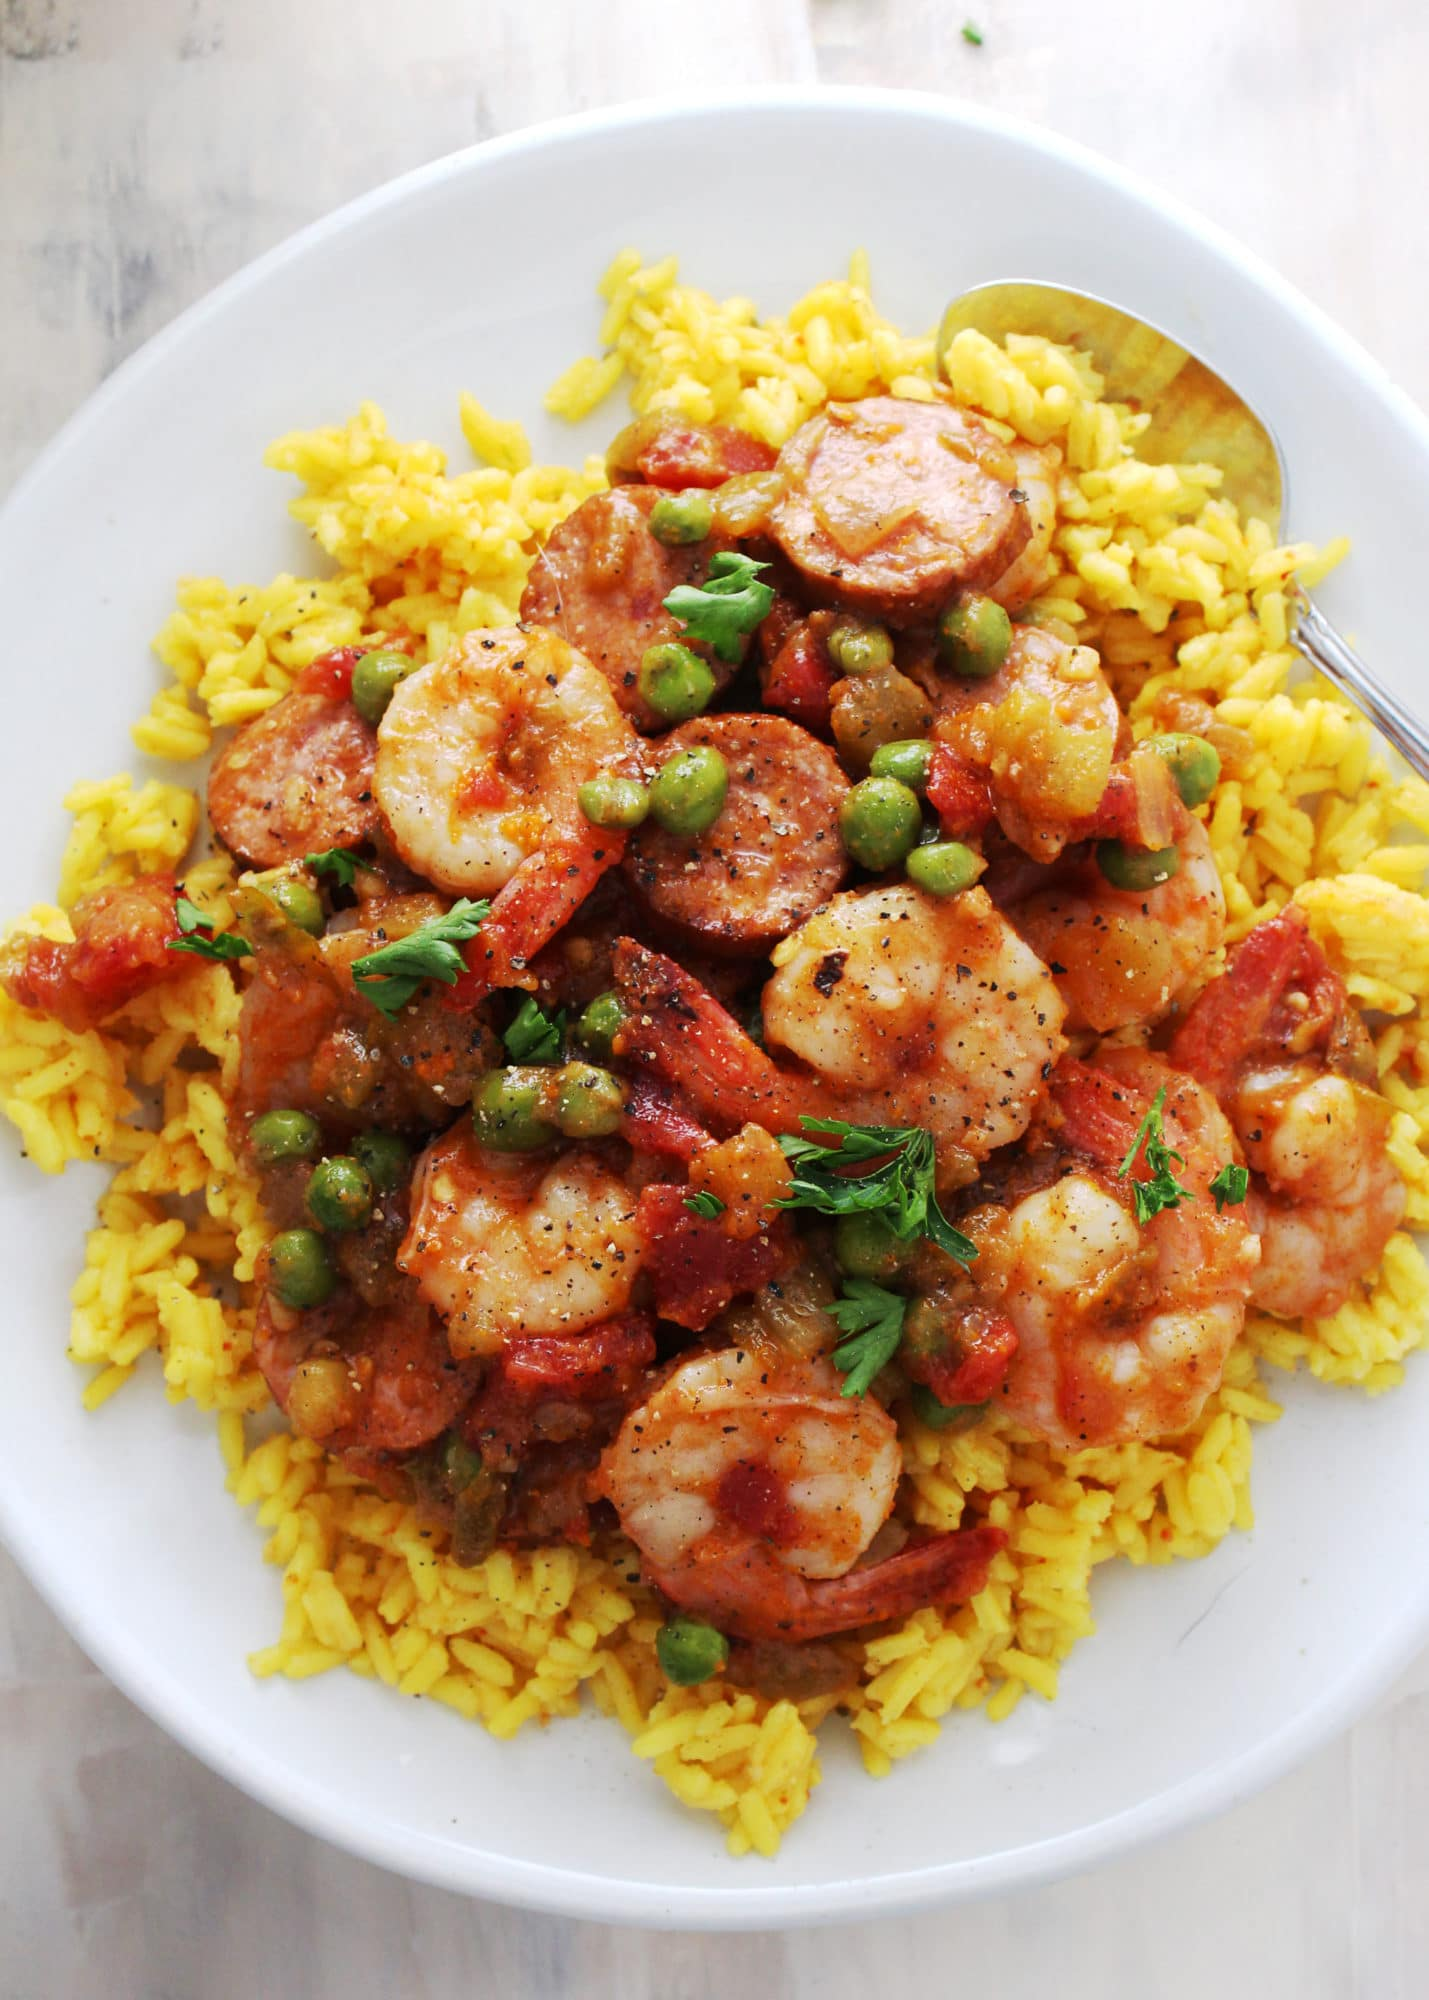 yellow rice topped with shrimp mixed with sausage and vegetables